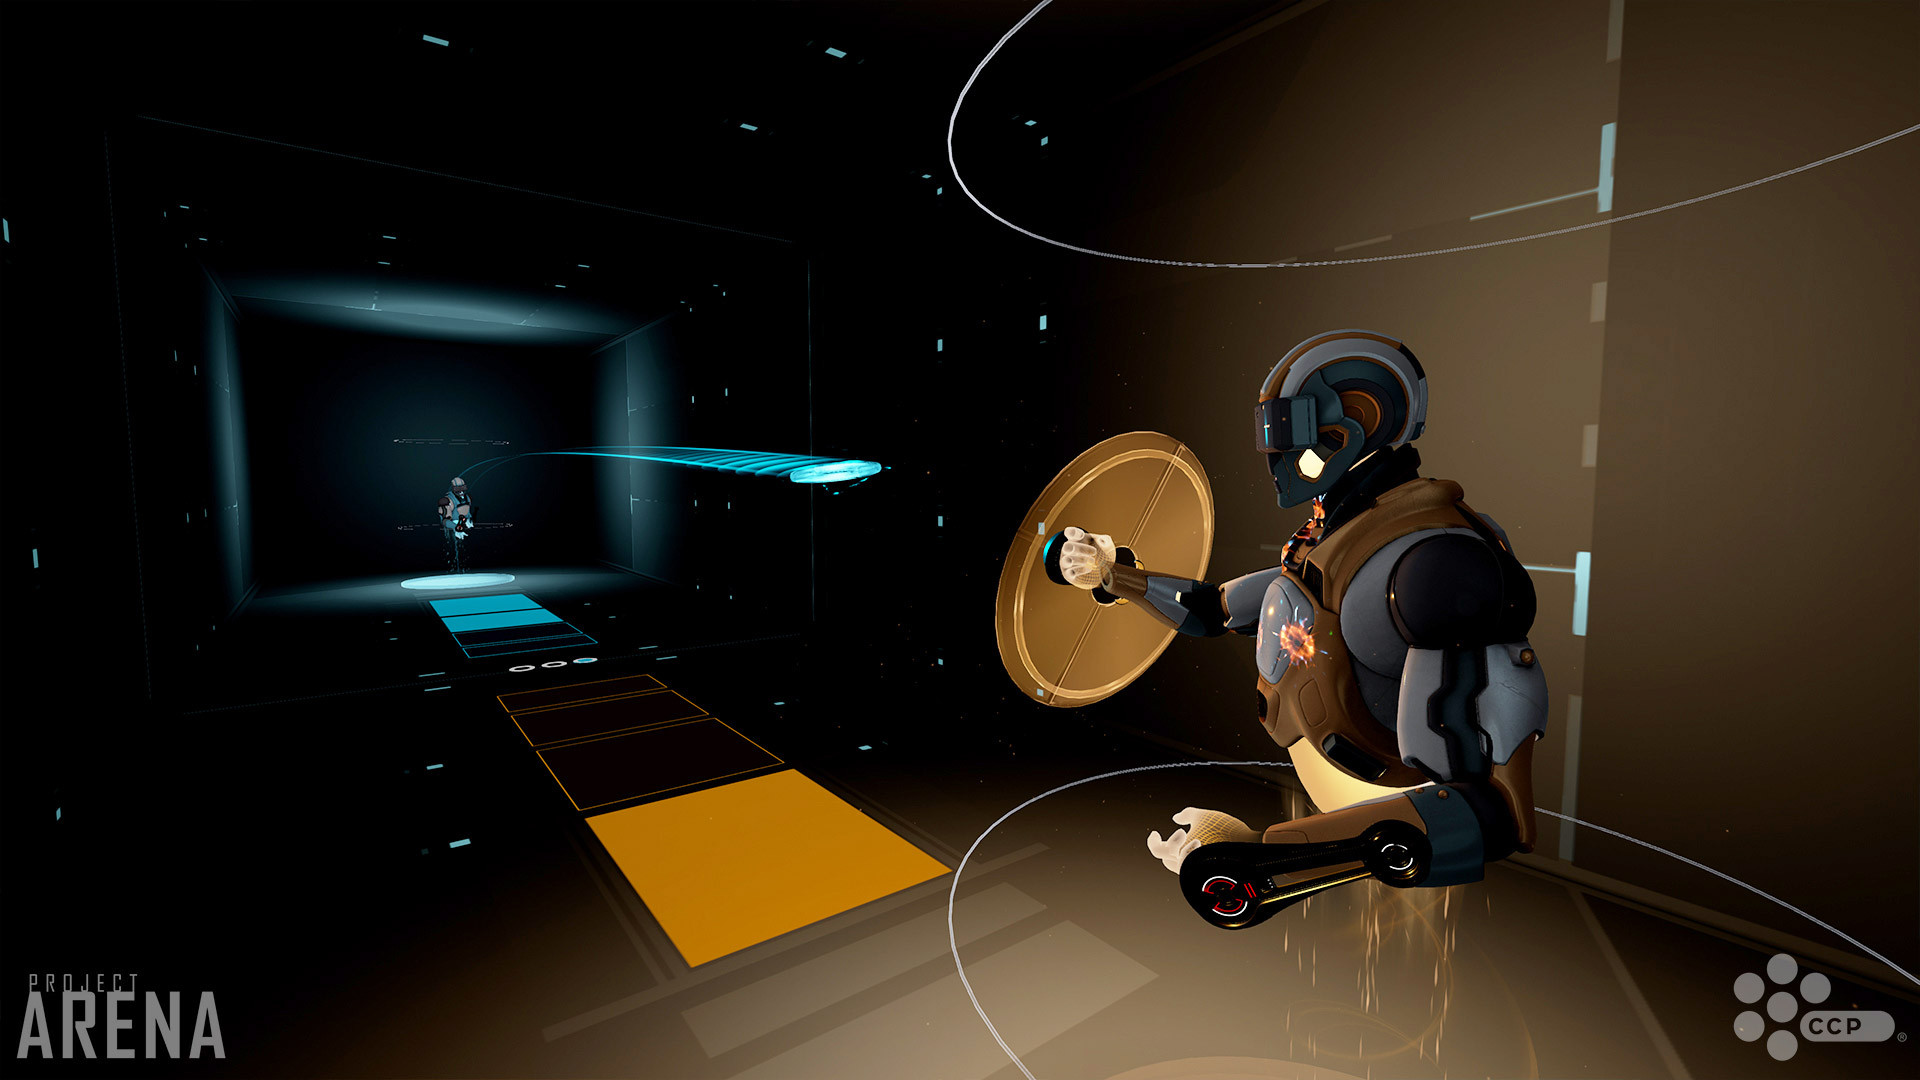 'Project Arena' isn't just an amazing 'Tron' tribute, it could be VR's first eSport